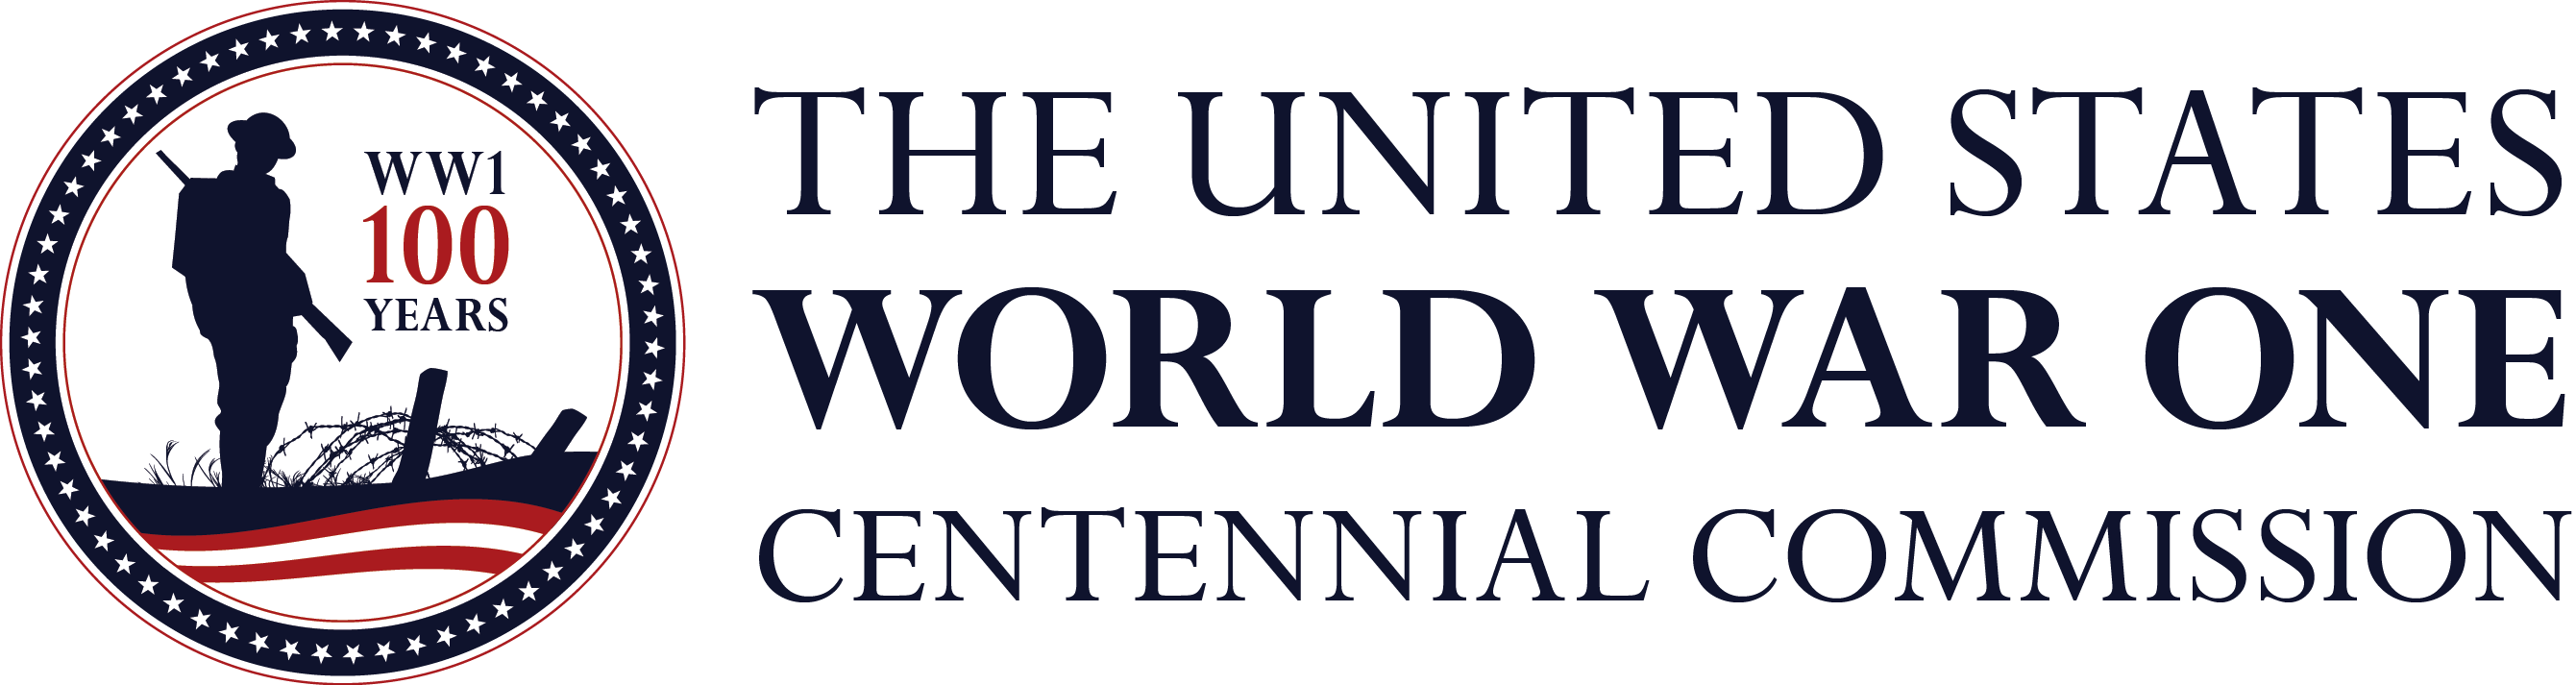 World War I Centennial Commission